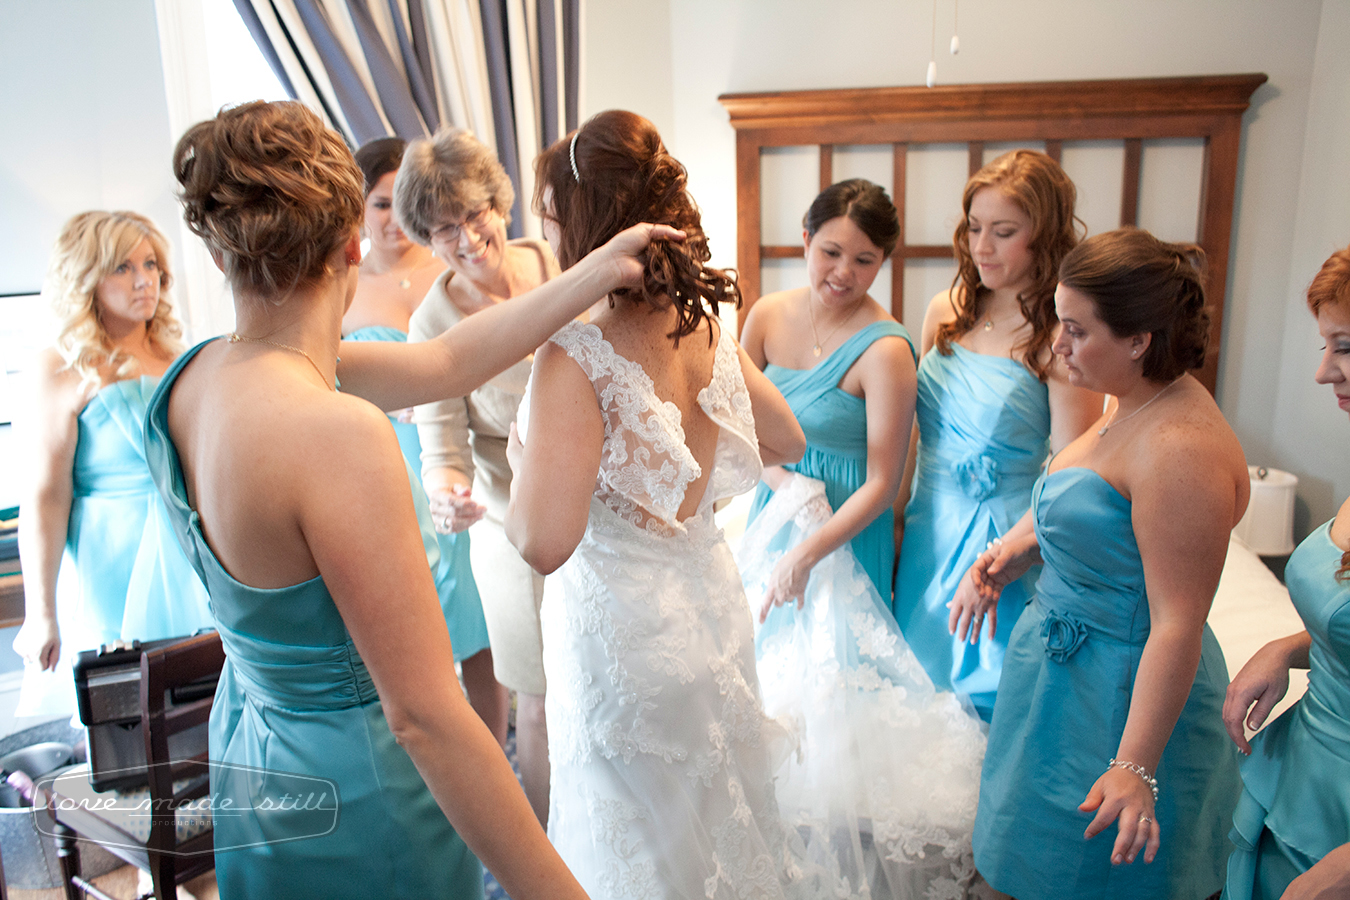 The reaction of the bridesmaids as the bride puts on dress